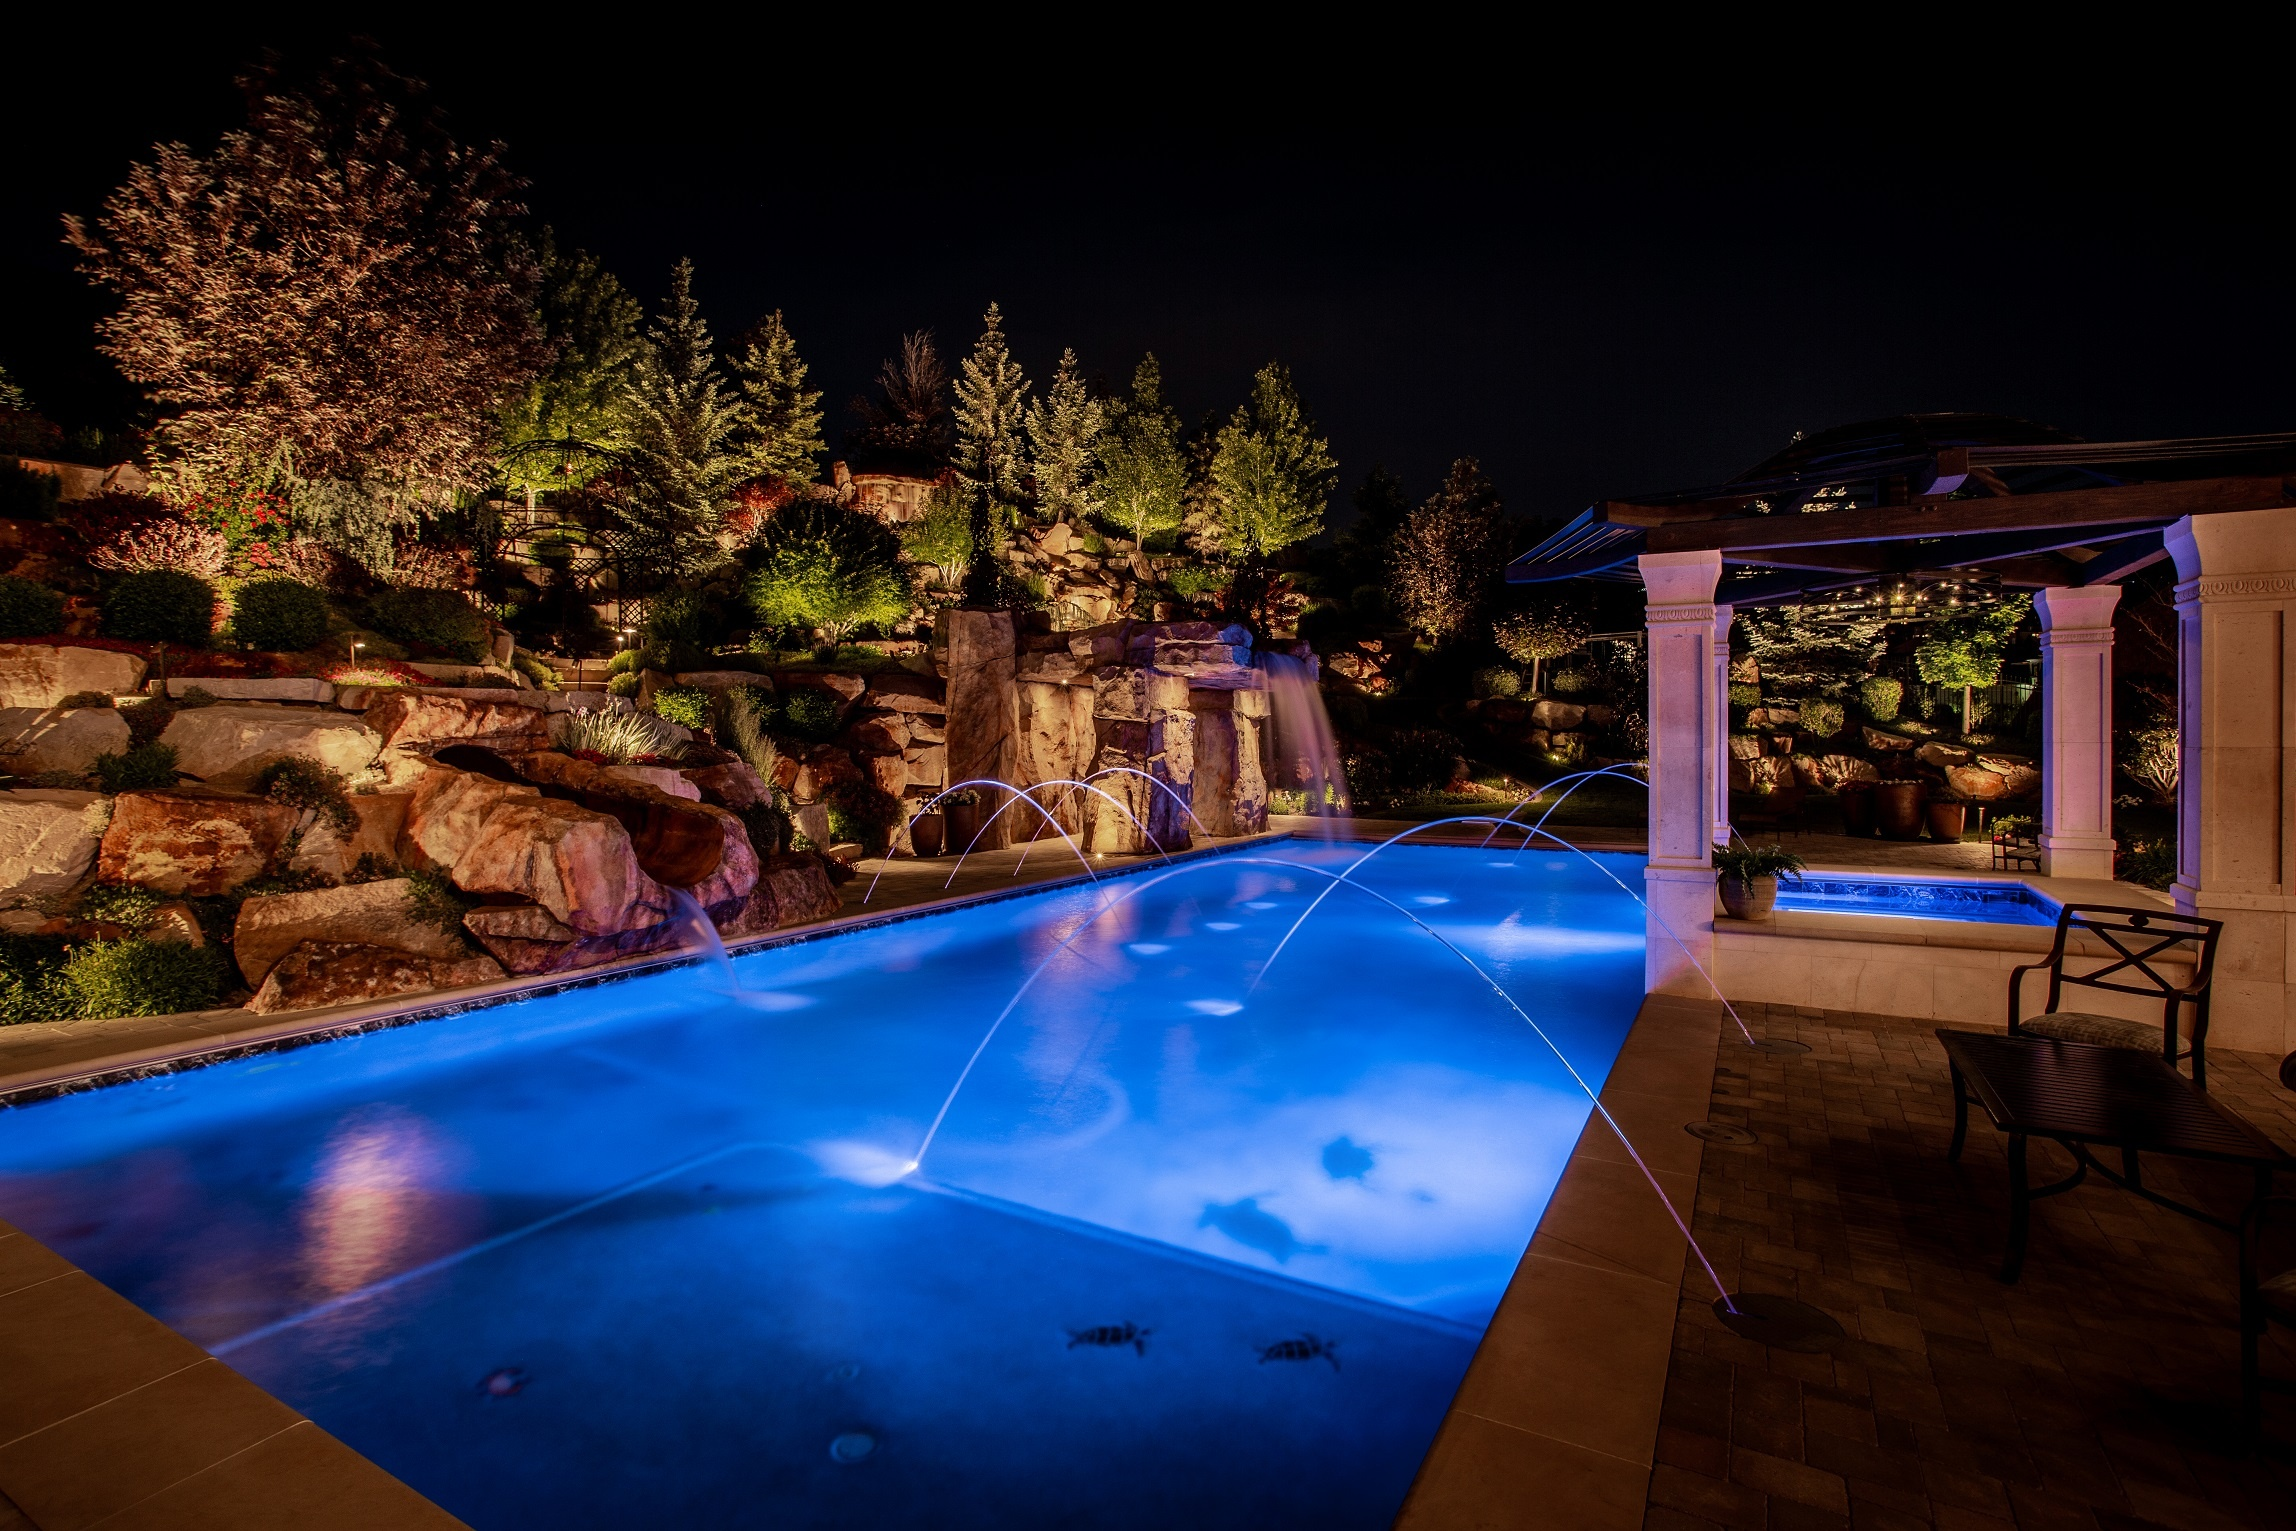 Draper-Pond-Pool-Lighting-Outdoor-Living